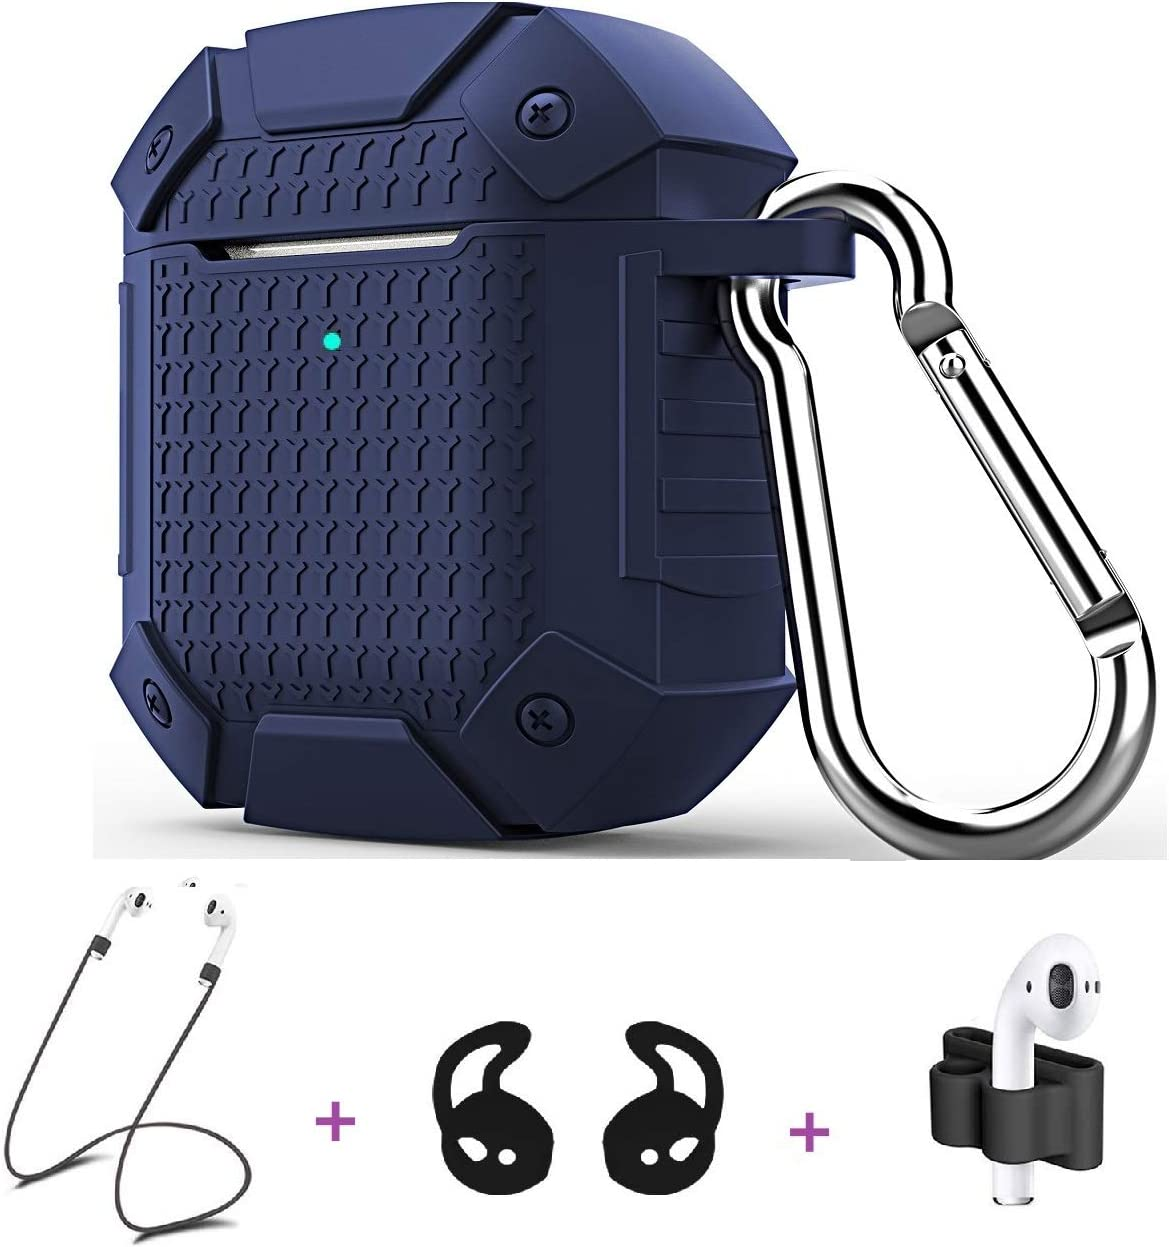 Jiarusing Airpods Case Cover, Protective Silicone AirPods Skin Accessories Military Drop Tested Kit Cover Compatible AirPods 1&2 Charging Case with Carabiner+Strap+Earhook [Front LED Visible]